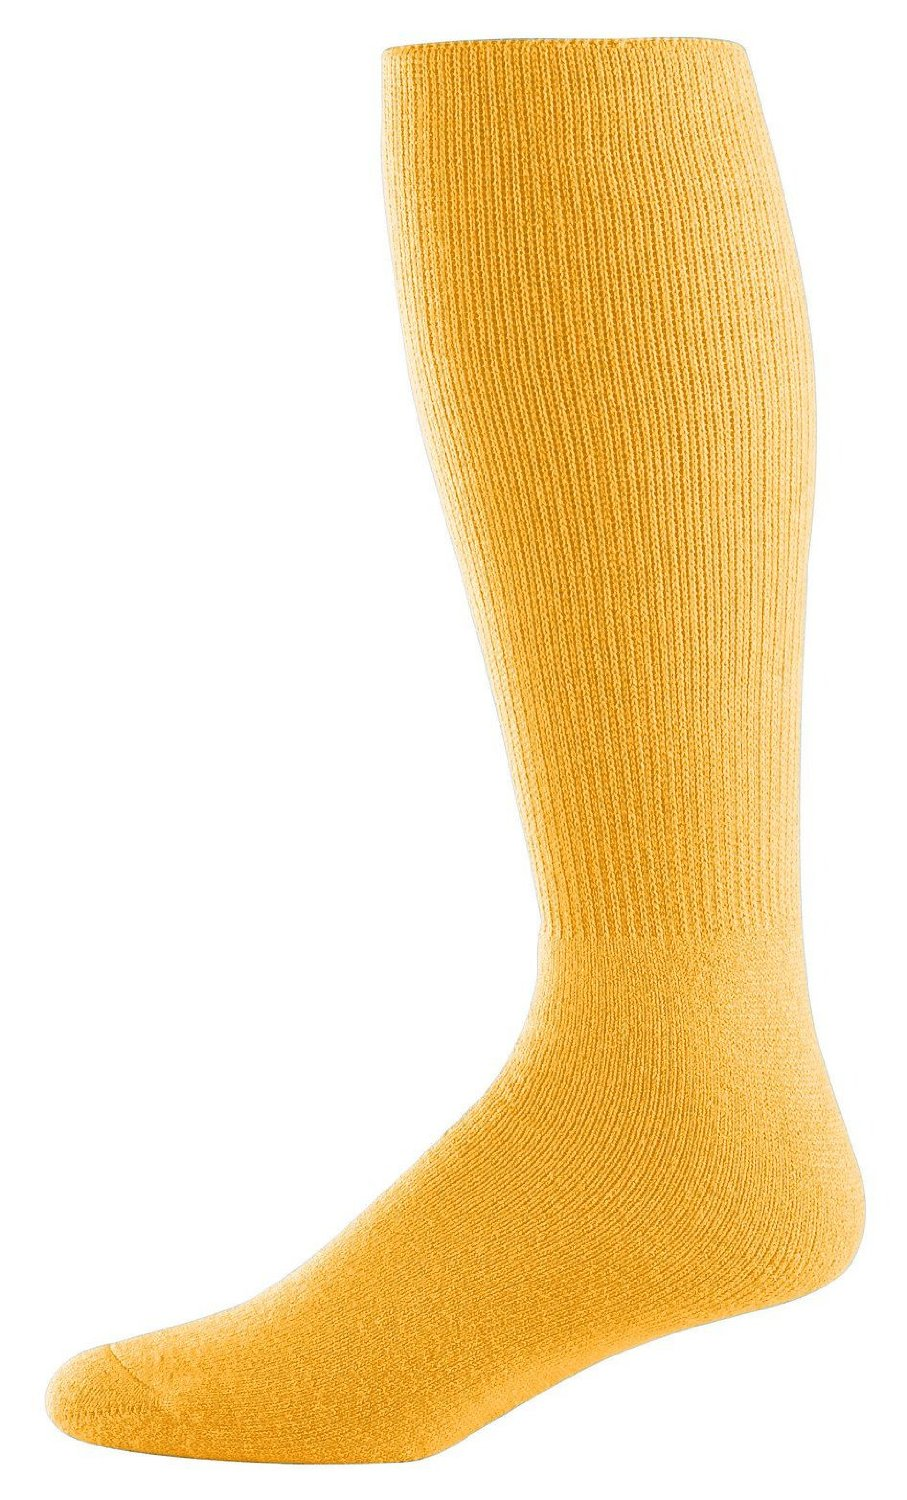 Athletic Socks - Youth Size 7-9, Color: Gold, Size: 7 - 9